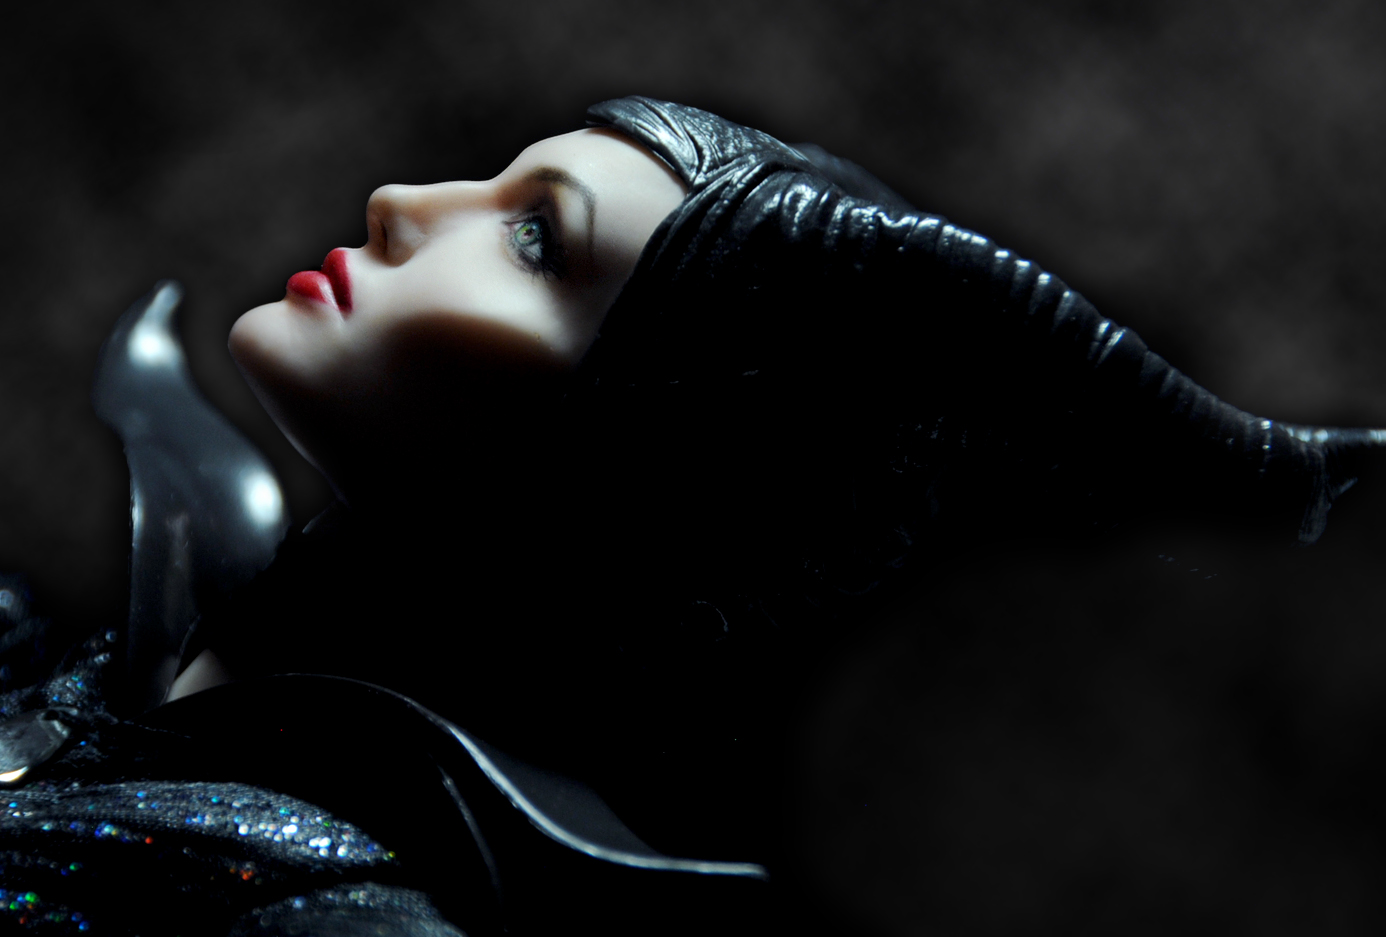 Angelina Jolie Maleficent custom doll repaint by noeling